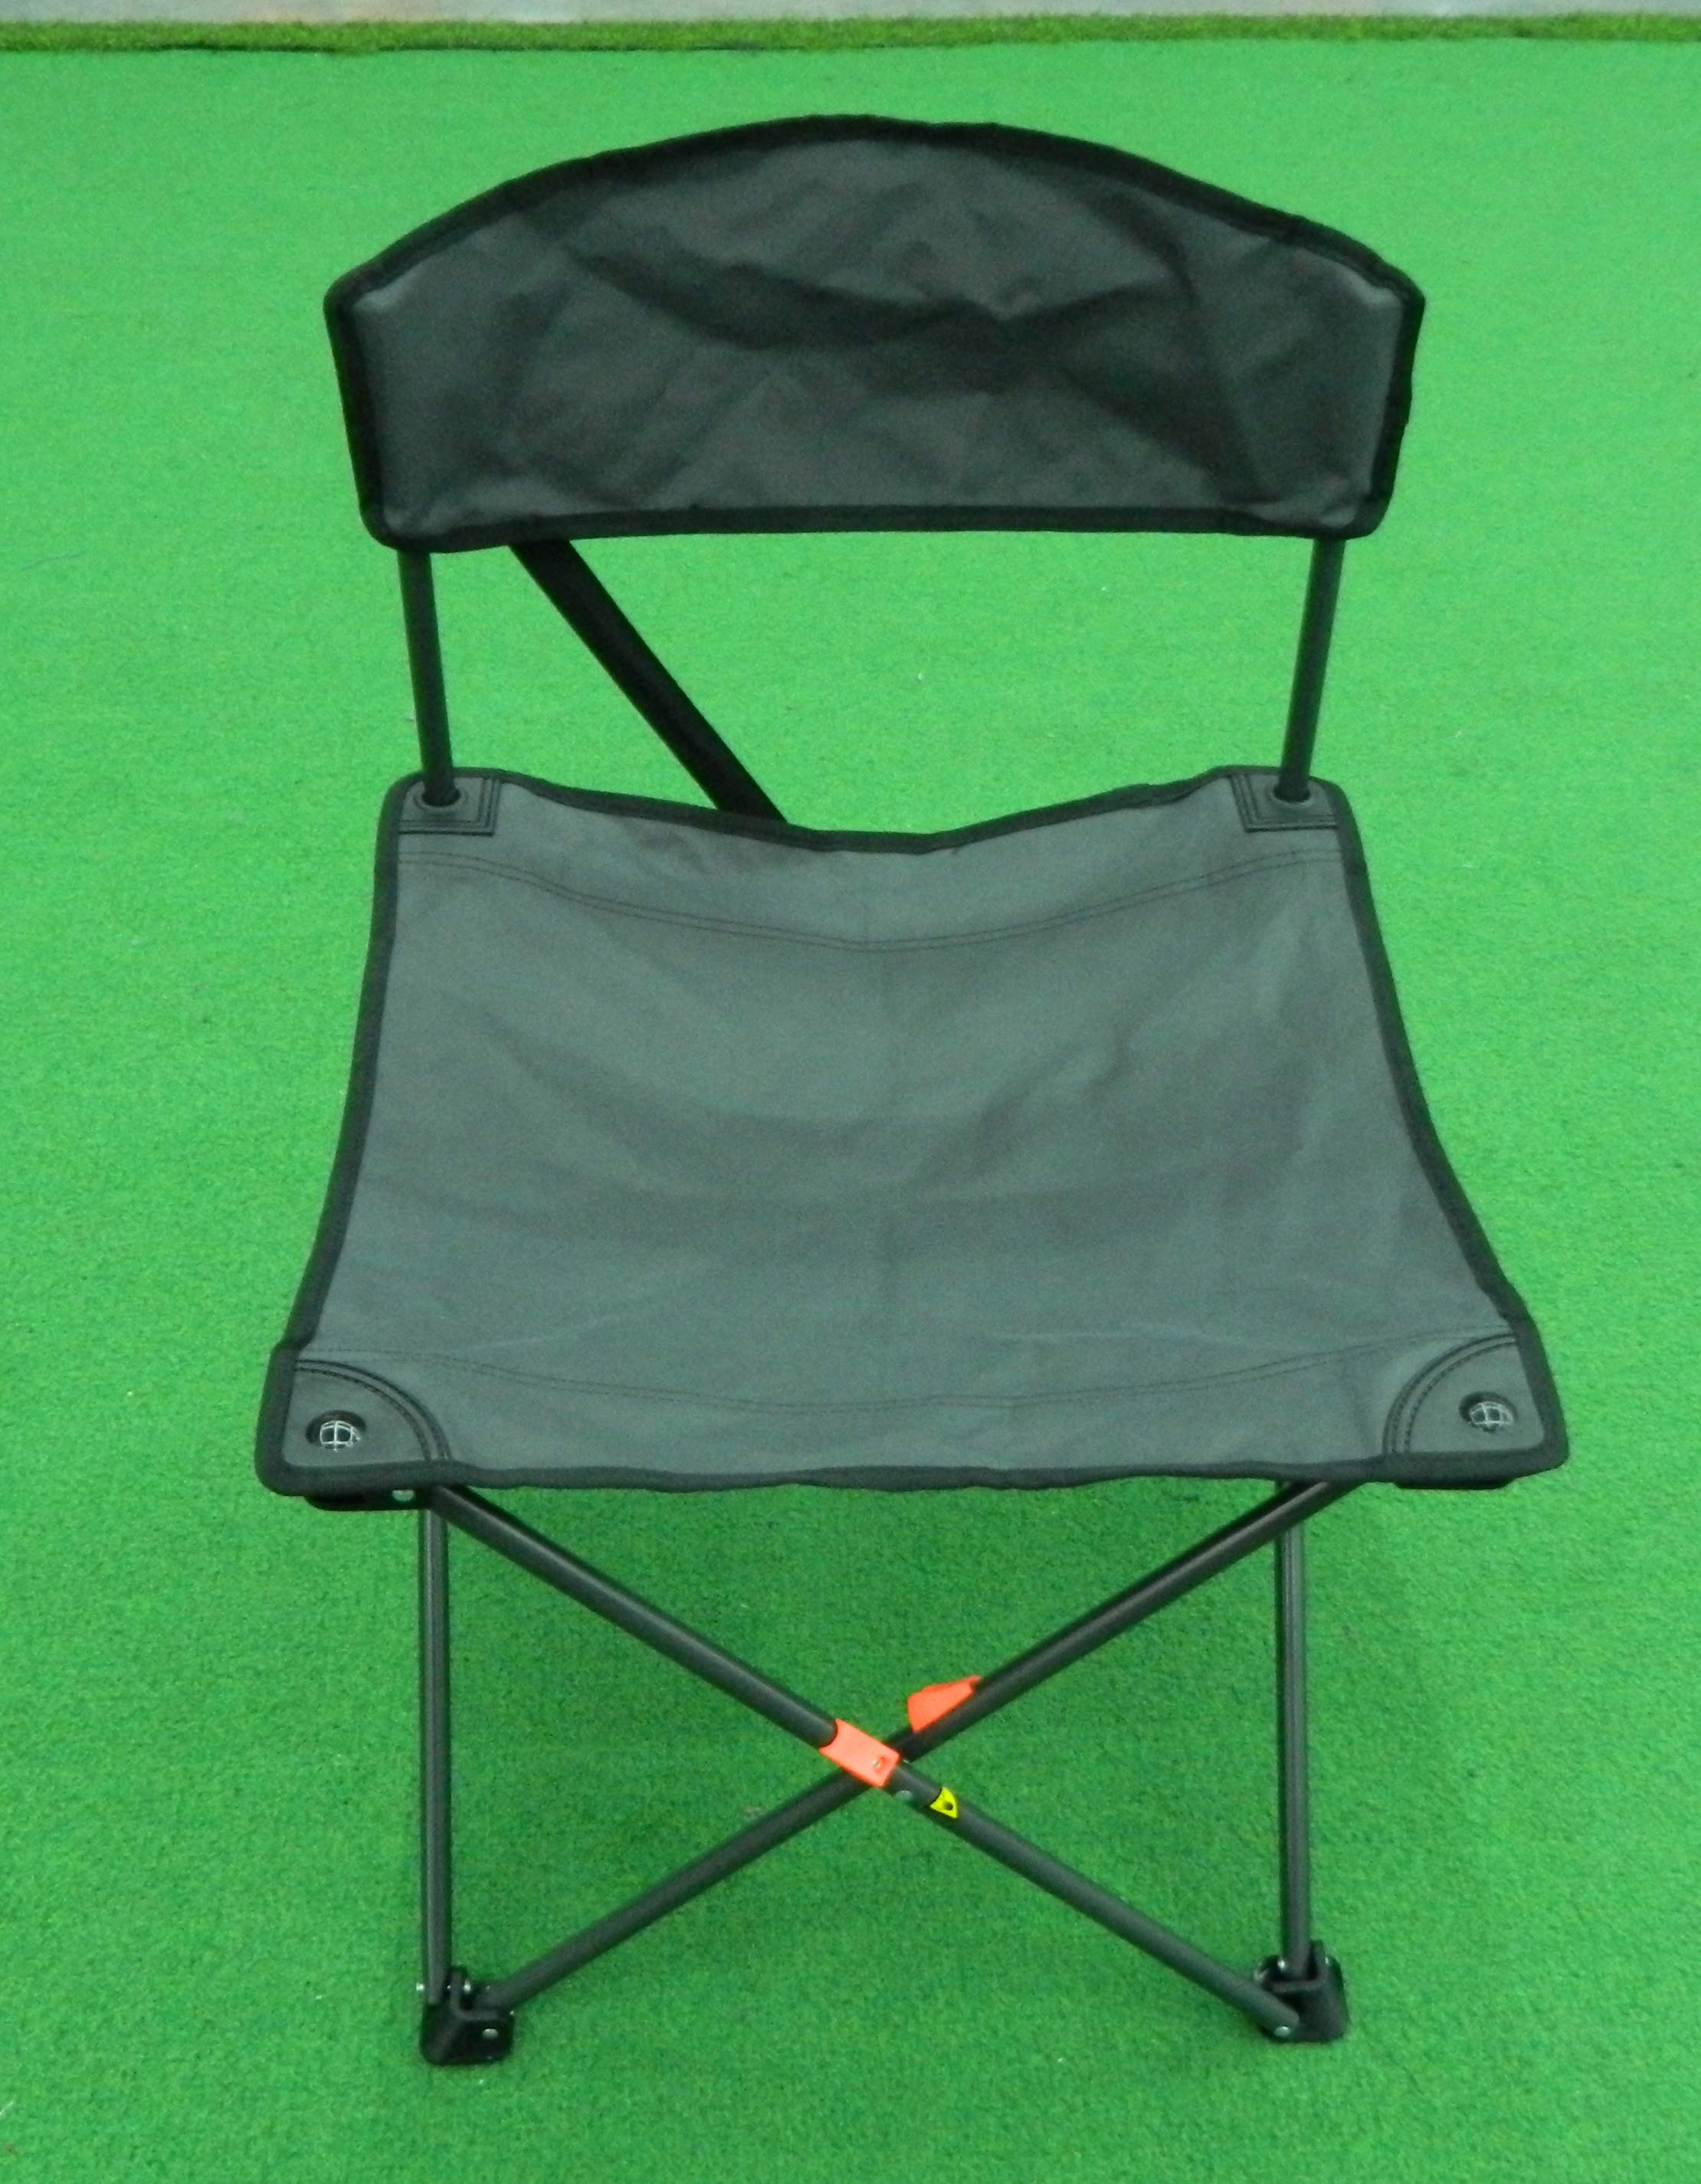 Portable Stool Decathlon Outdoor Folding Chair Portable Leisure Fishing Collapsible Chair Stool Caperlan